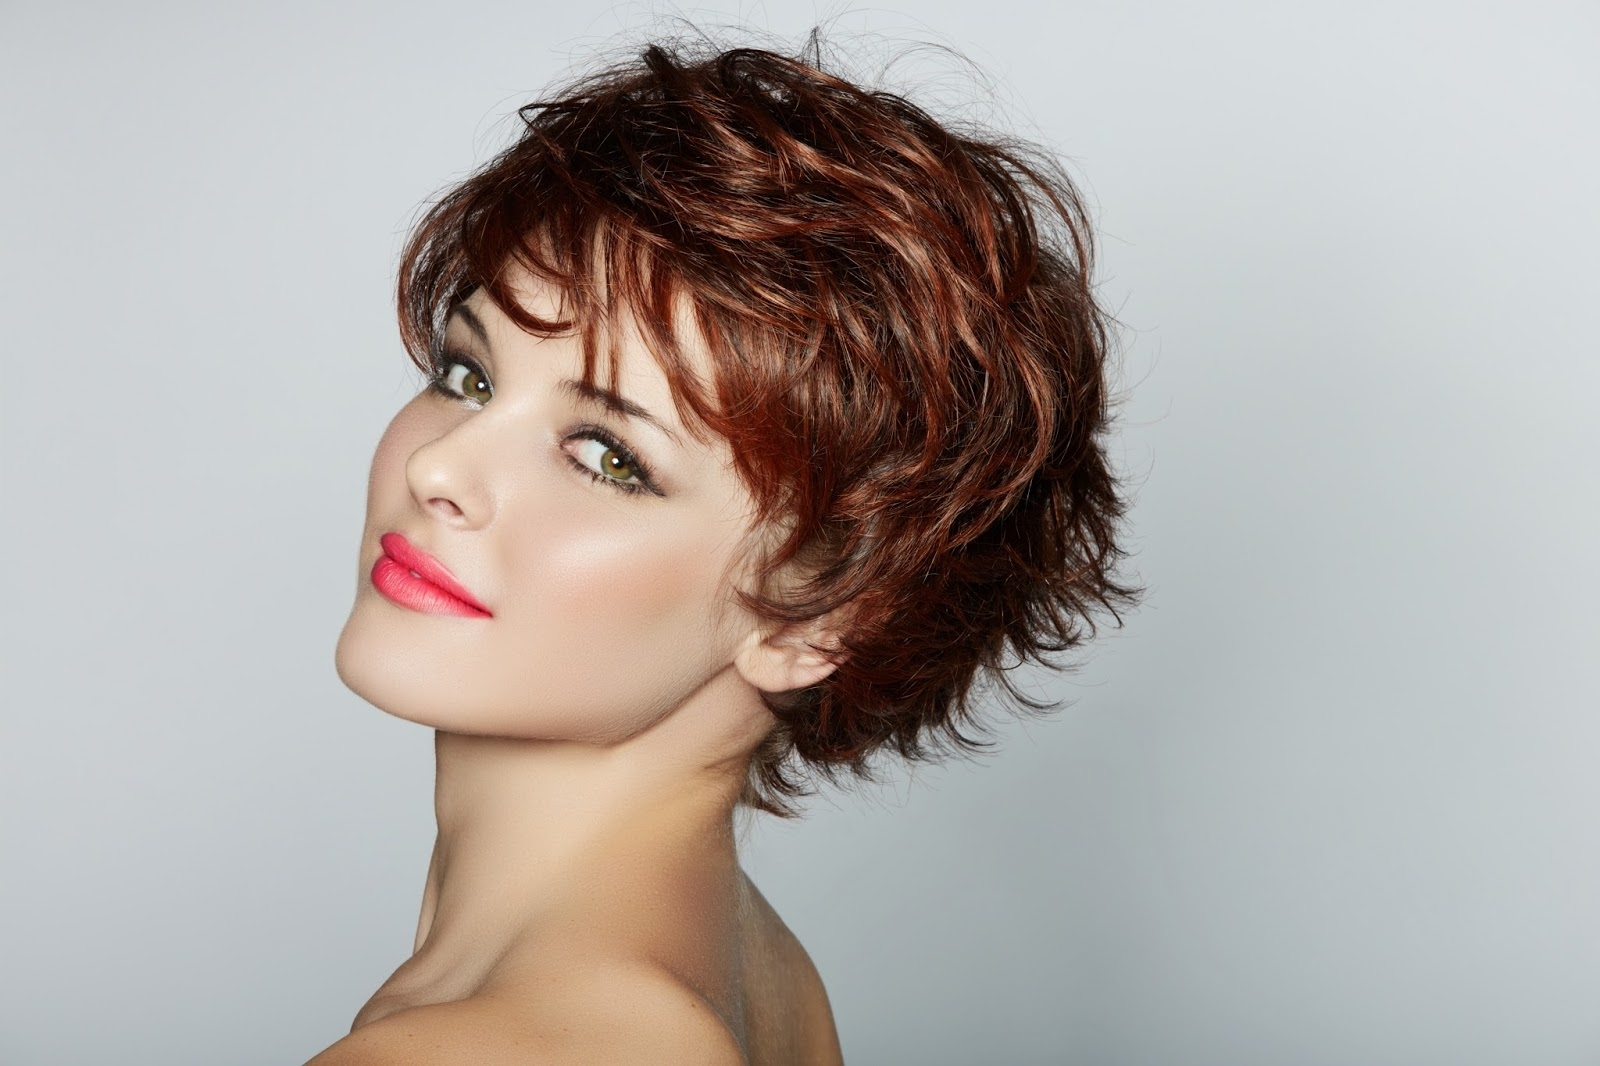 50 Pretty Short Wavy Hairstyles For Women | Hairstylo Inside Most Recently Pixie Hairstyles With Curly Hair (View 13 of 33)